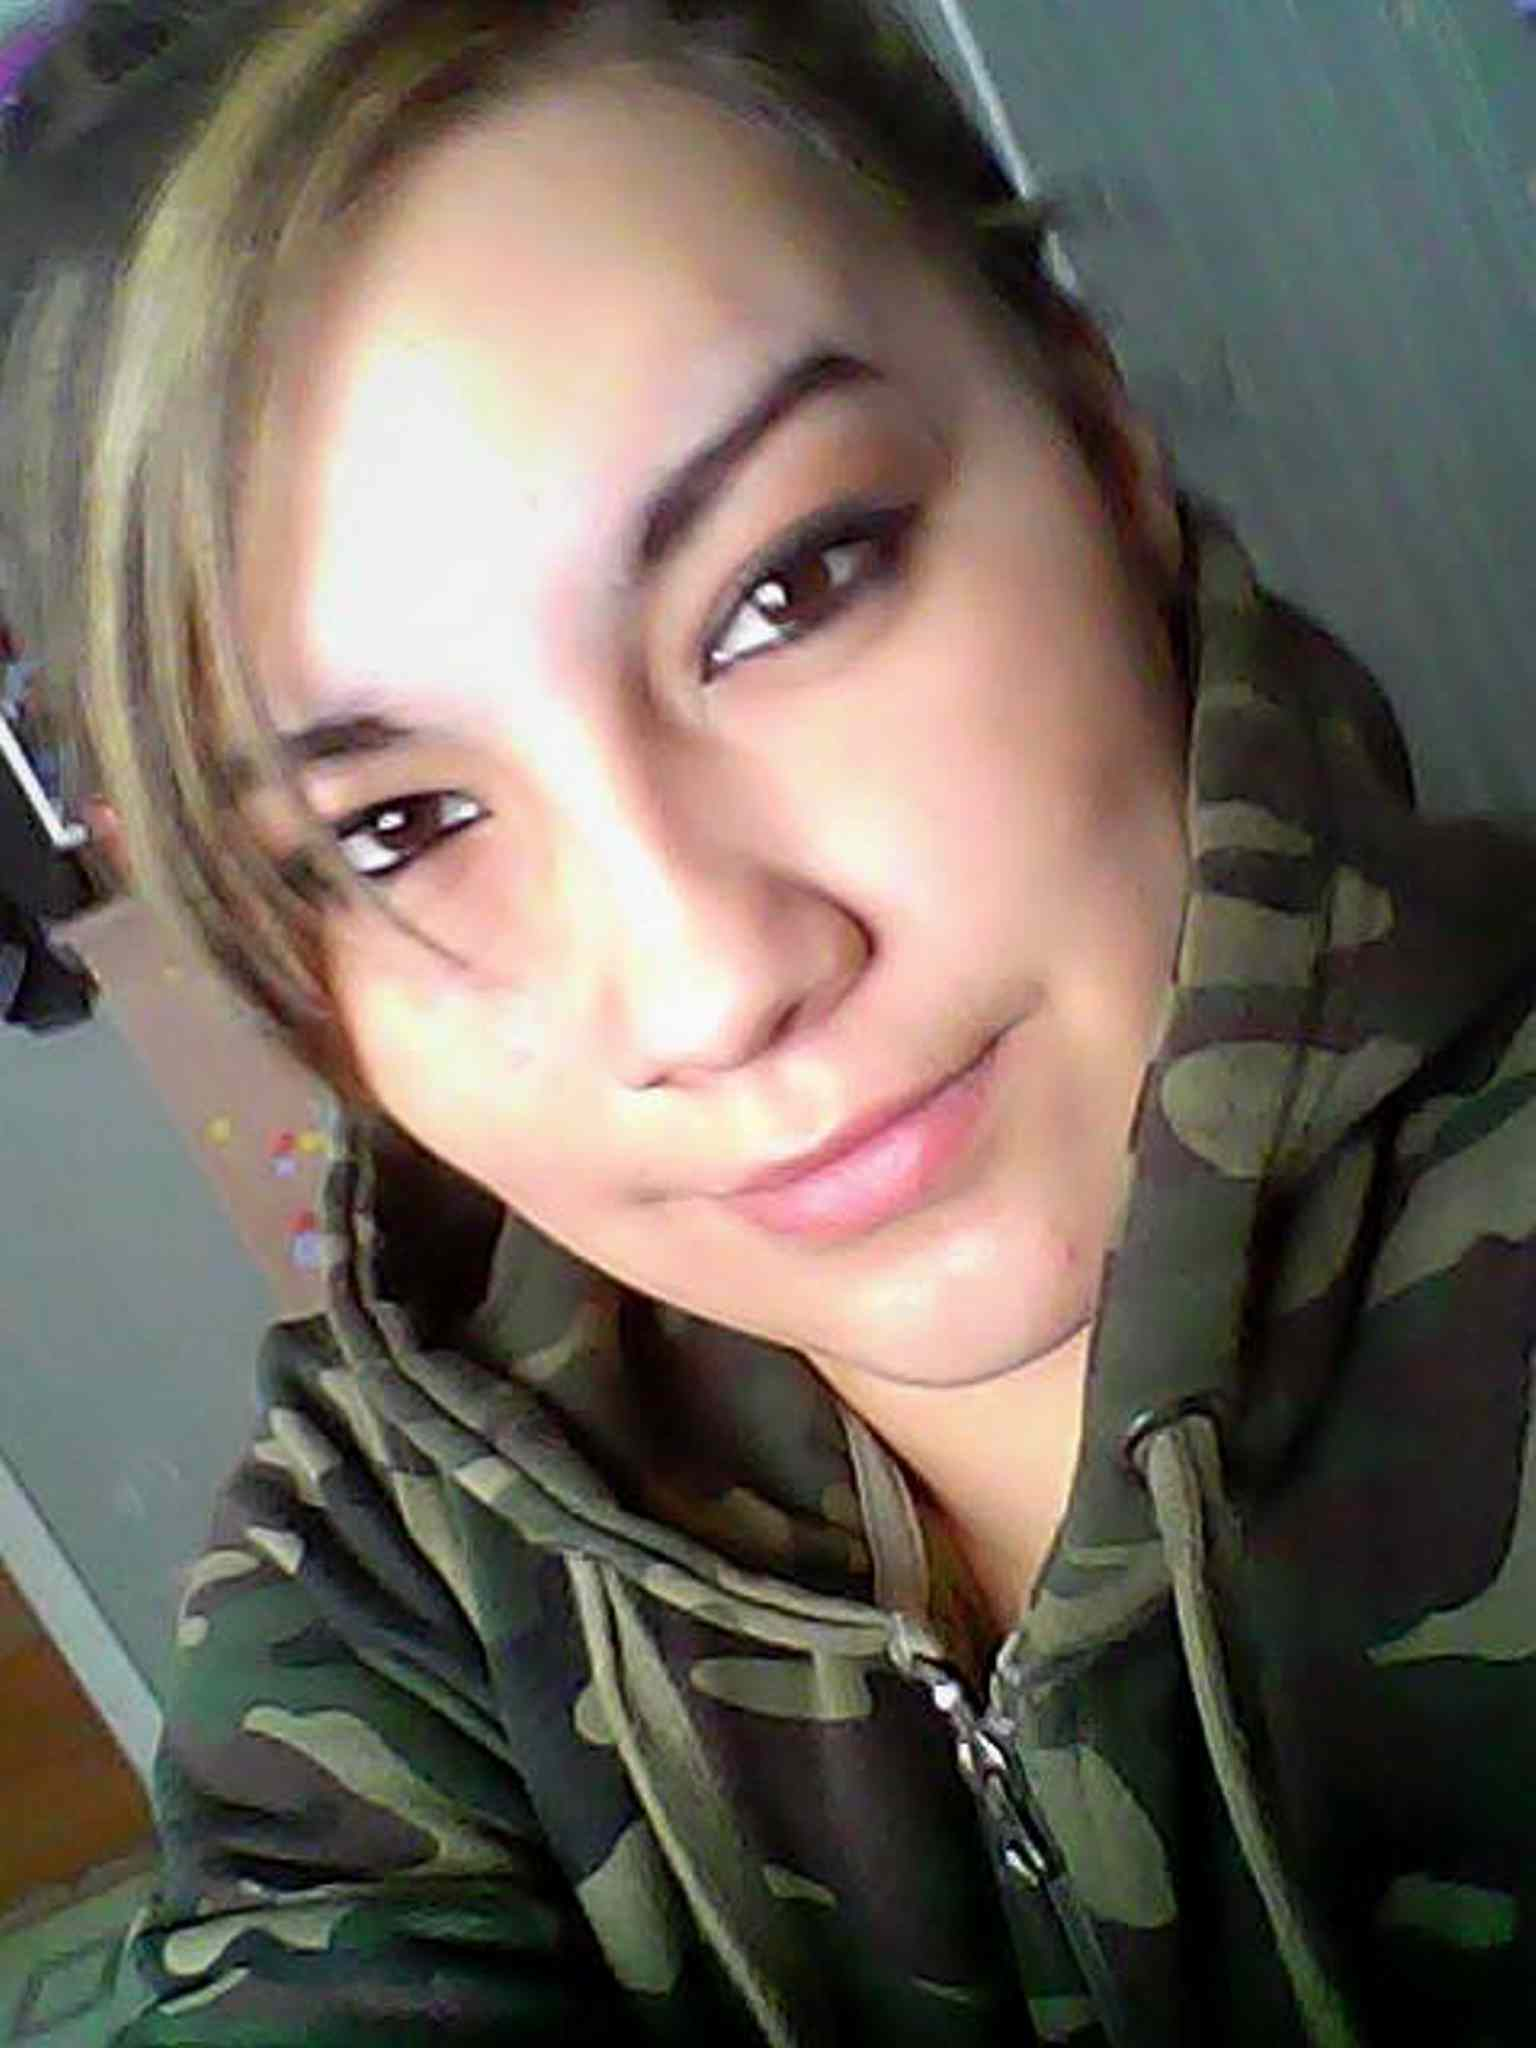 The bodies of three adults were discovered in the rubble of a home destroyed by fire early Tuesday morning (December 29, 2015) at Bunibonibee Cree Nation in northern Manitoba. Jastidee Sinclair was one of the victims.